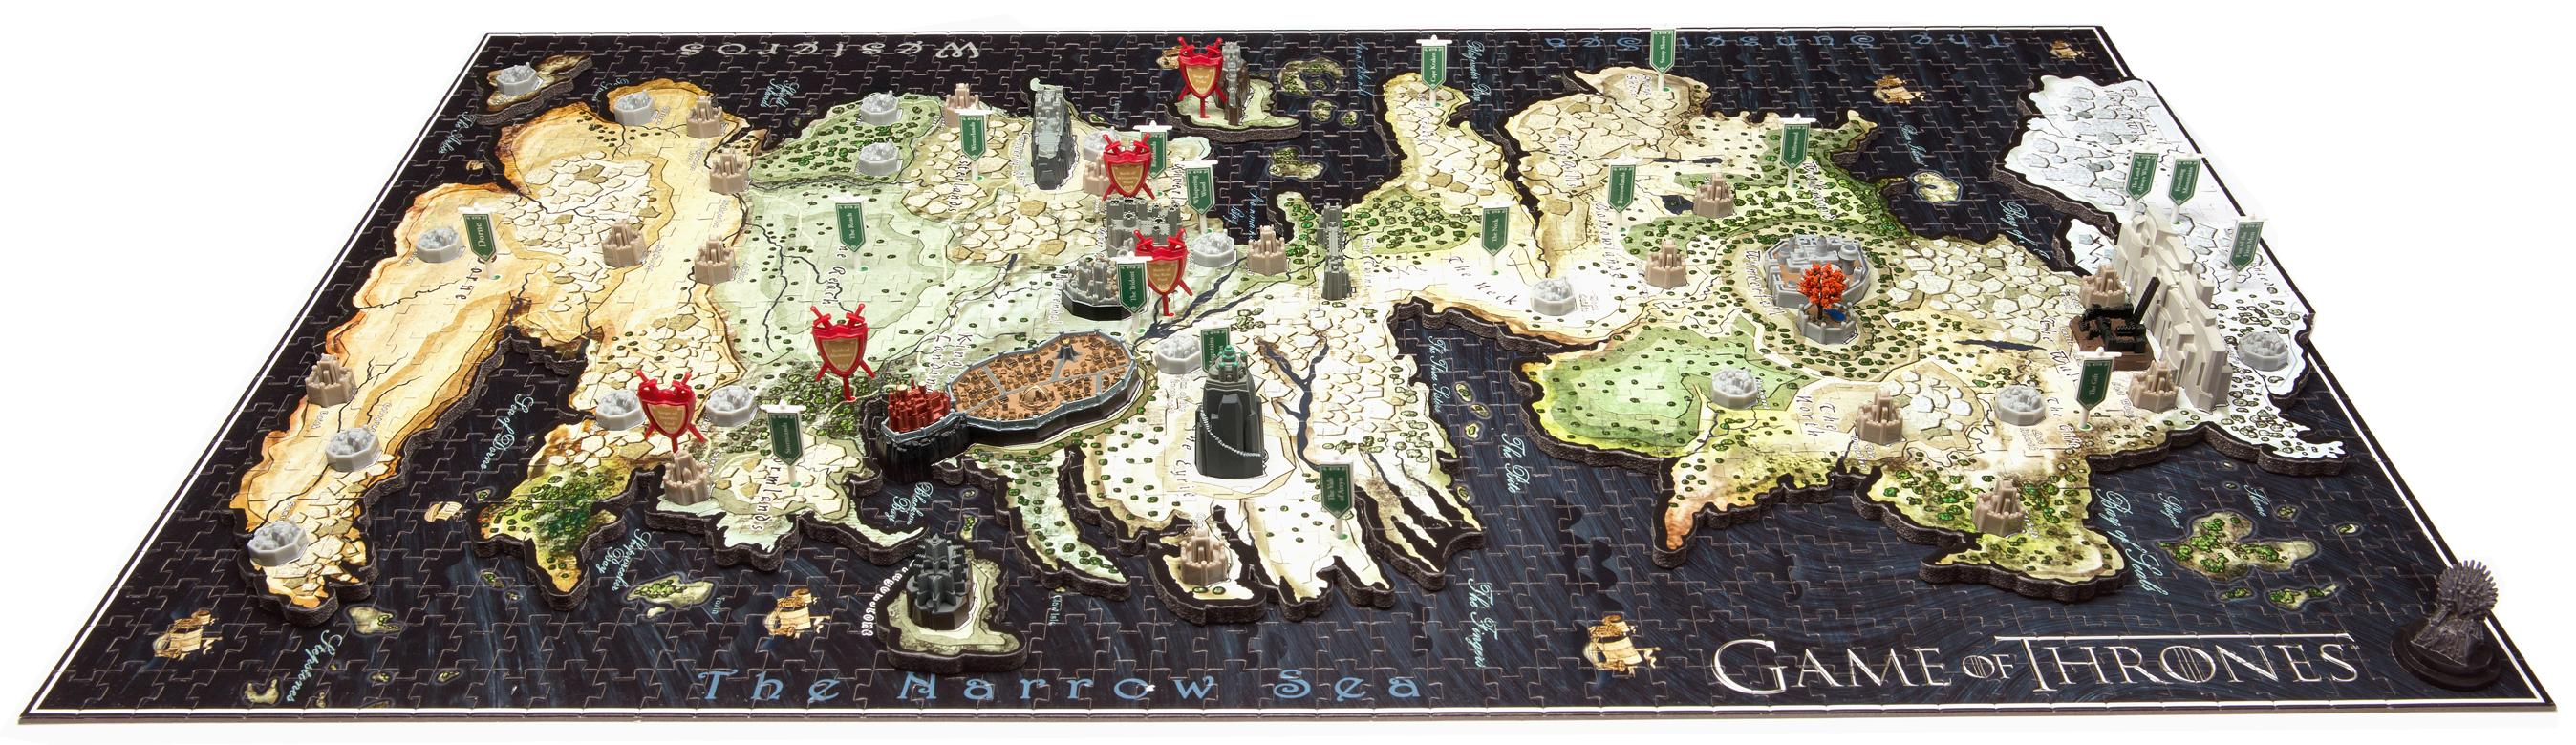 Amazon Com 4d Cityscape Game Of Thrones Westeros Puzzle